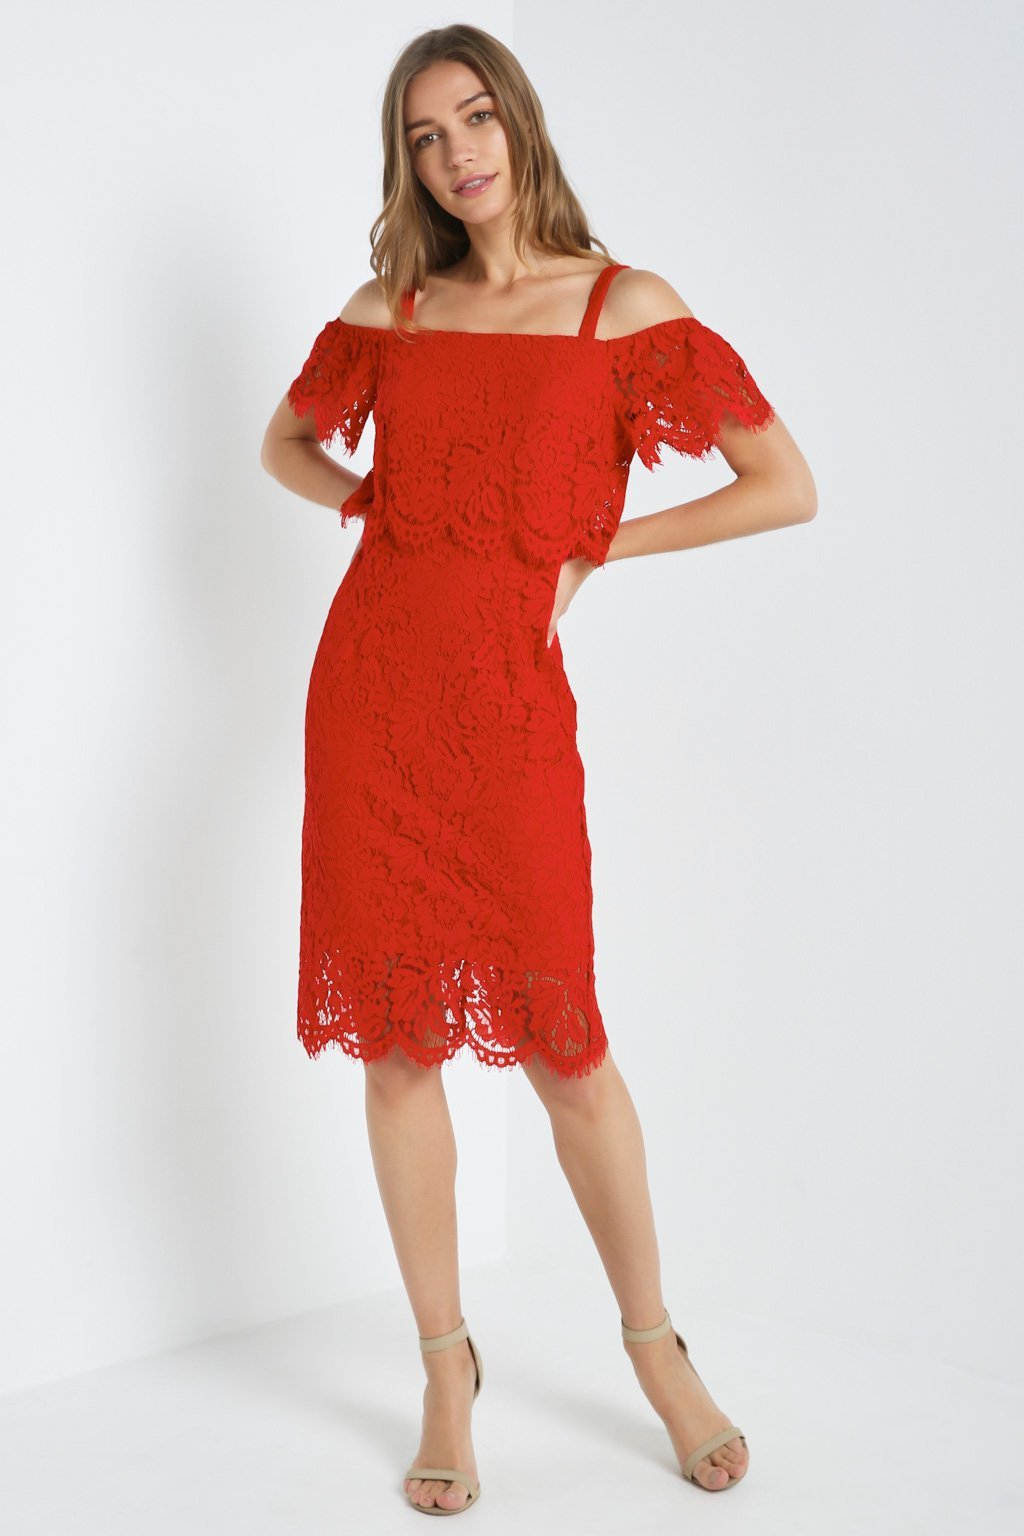 Poshsquare Dress Lace Off The Shoulder Dress